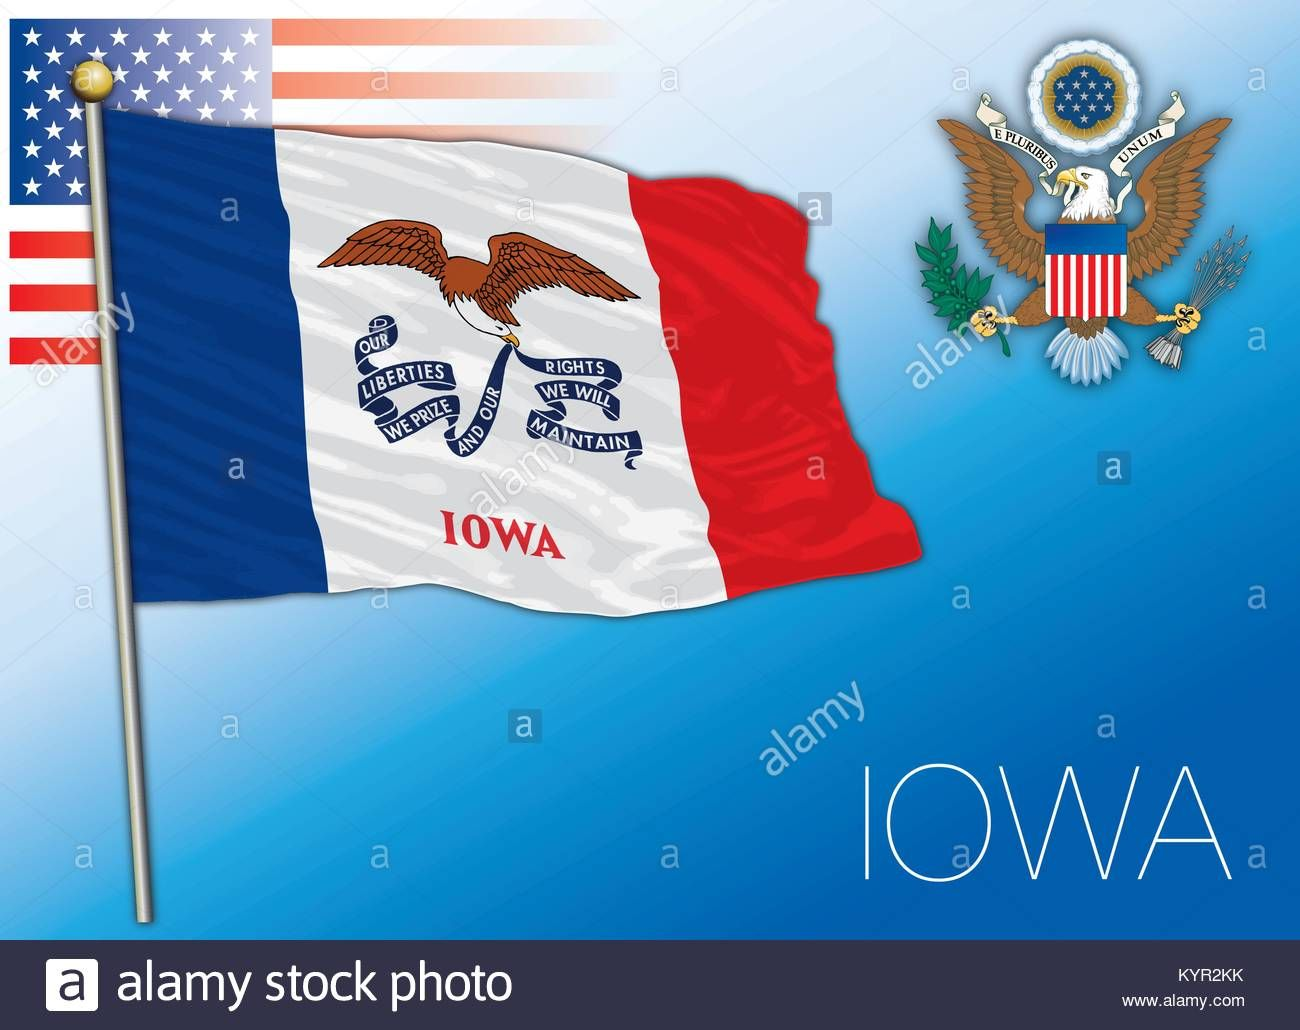 Iowa Federal State Flag United States Stock Vector Art